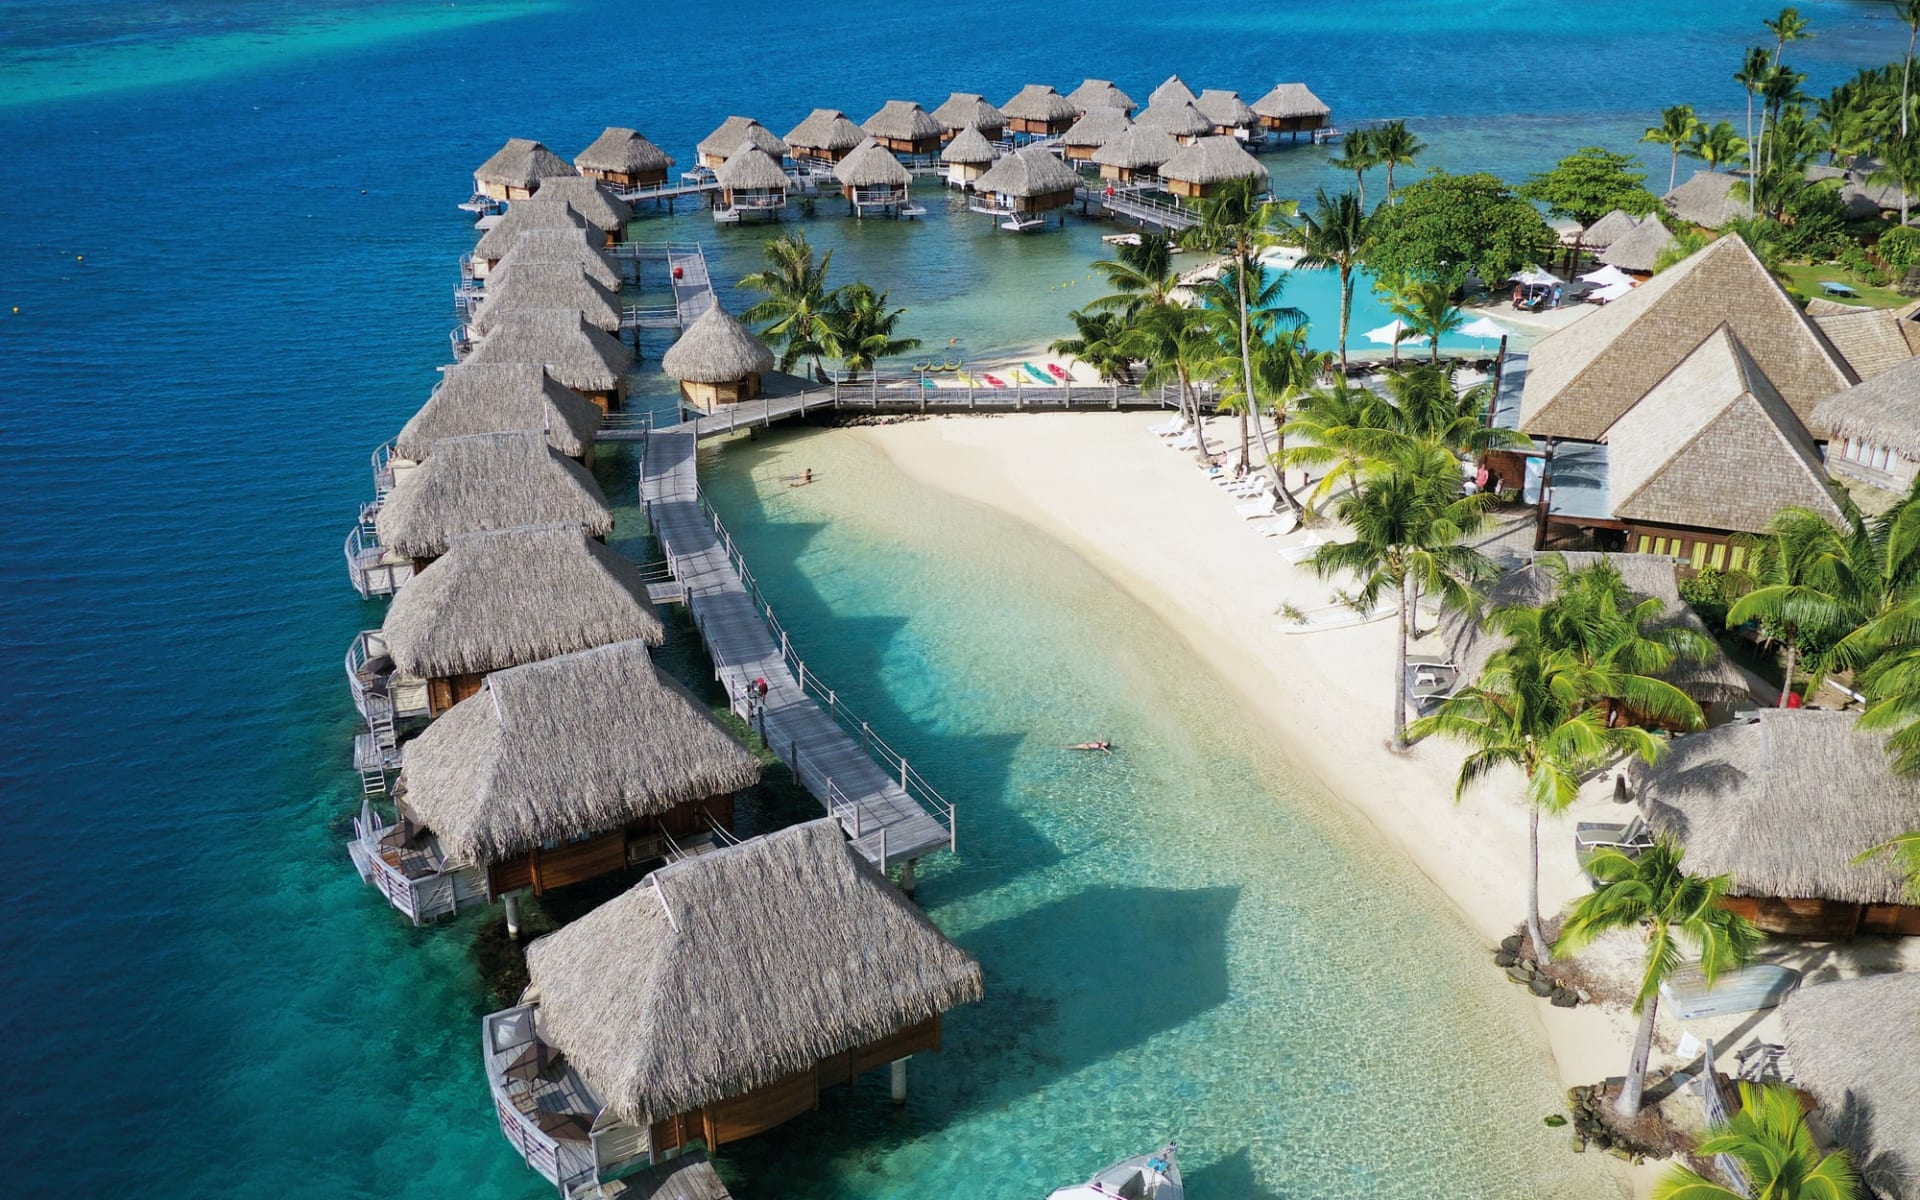 Manava Beach Resort & Spa in Moorea:  Manava Beach Resort & Spa - Vogelperspektive auf Überwasserbungalows